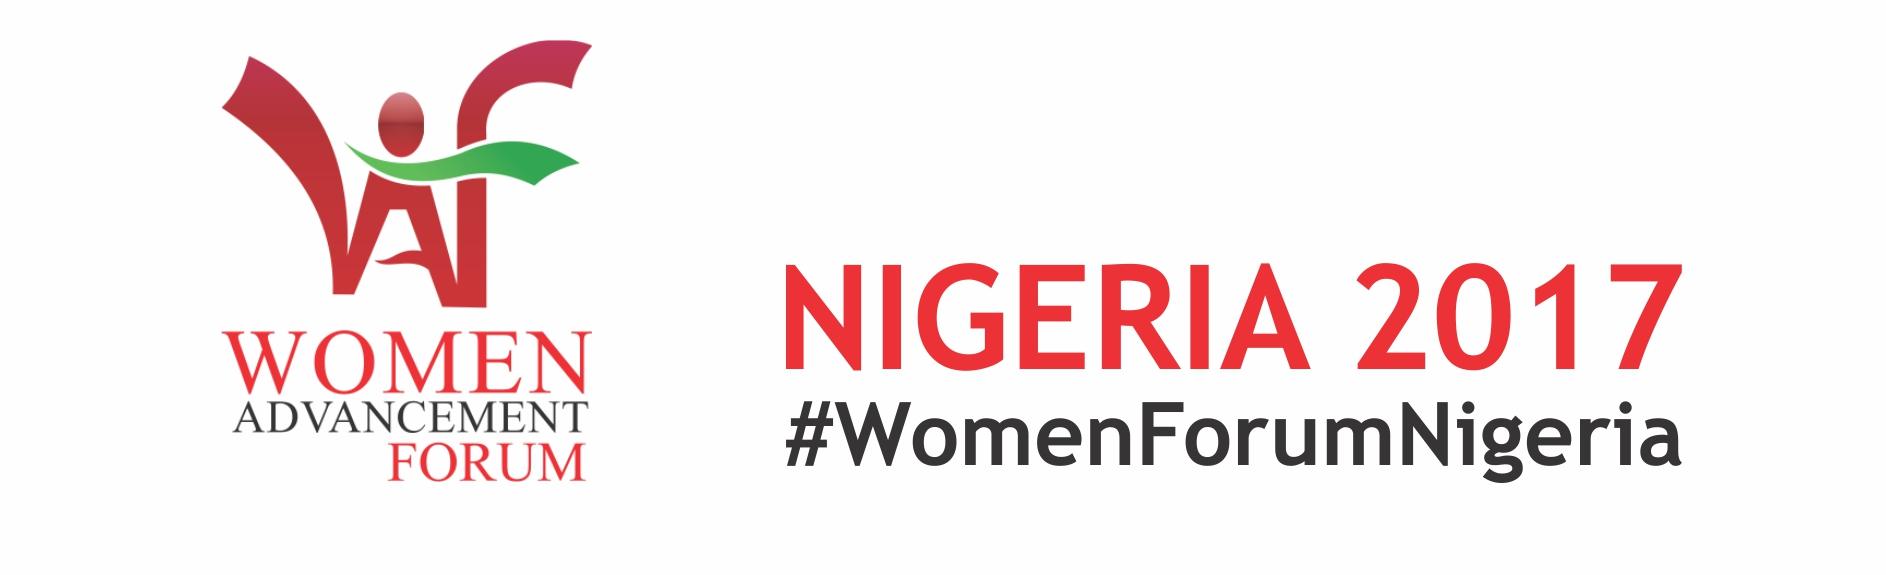 Women Advancement Forum – Nigeria 2017 – UN Women Africa